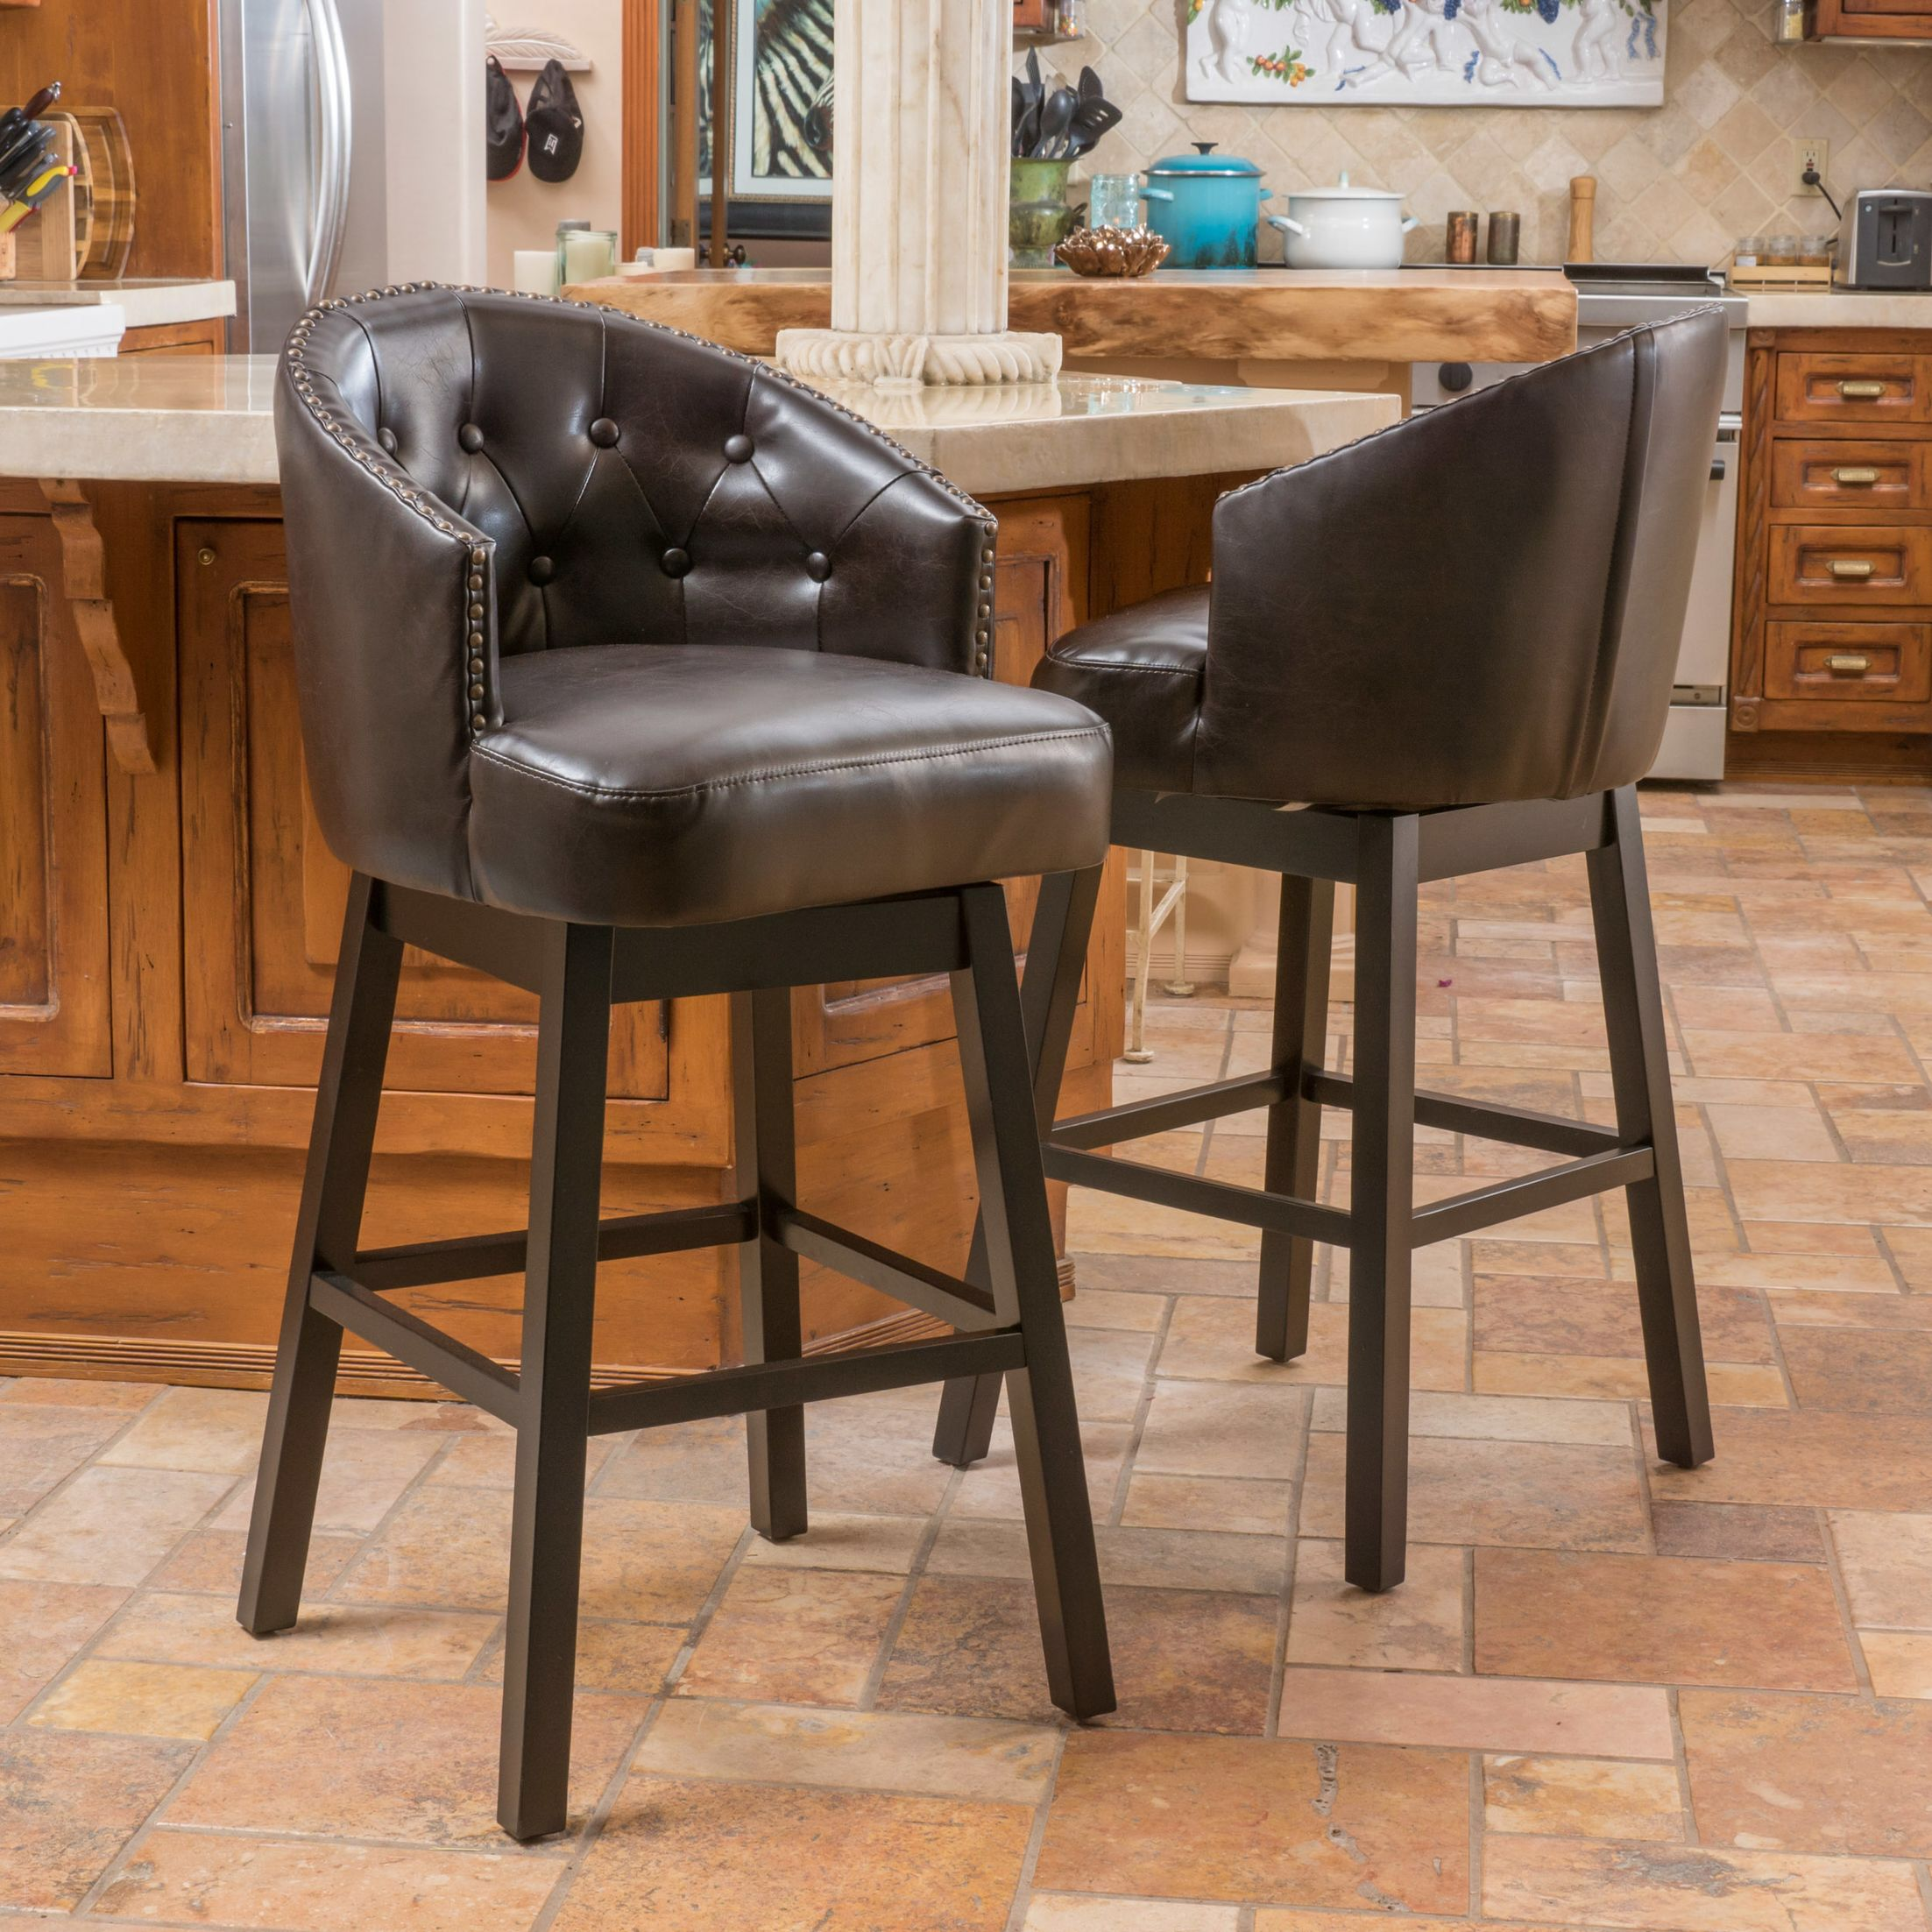 Swivel Bar Stools With Back Counter Height